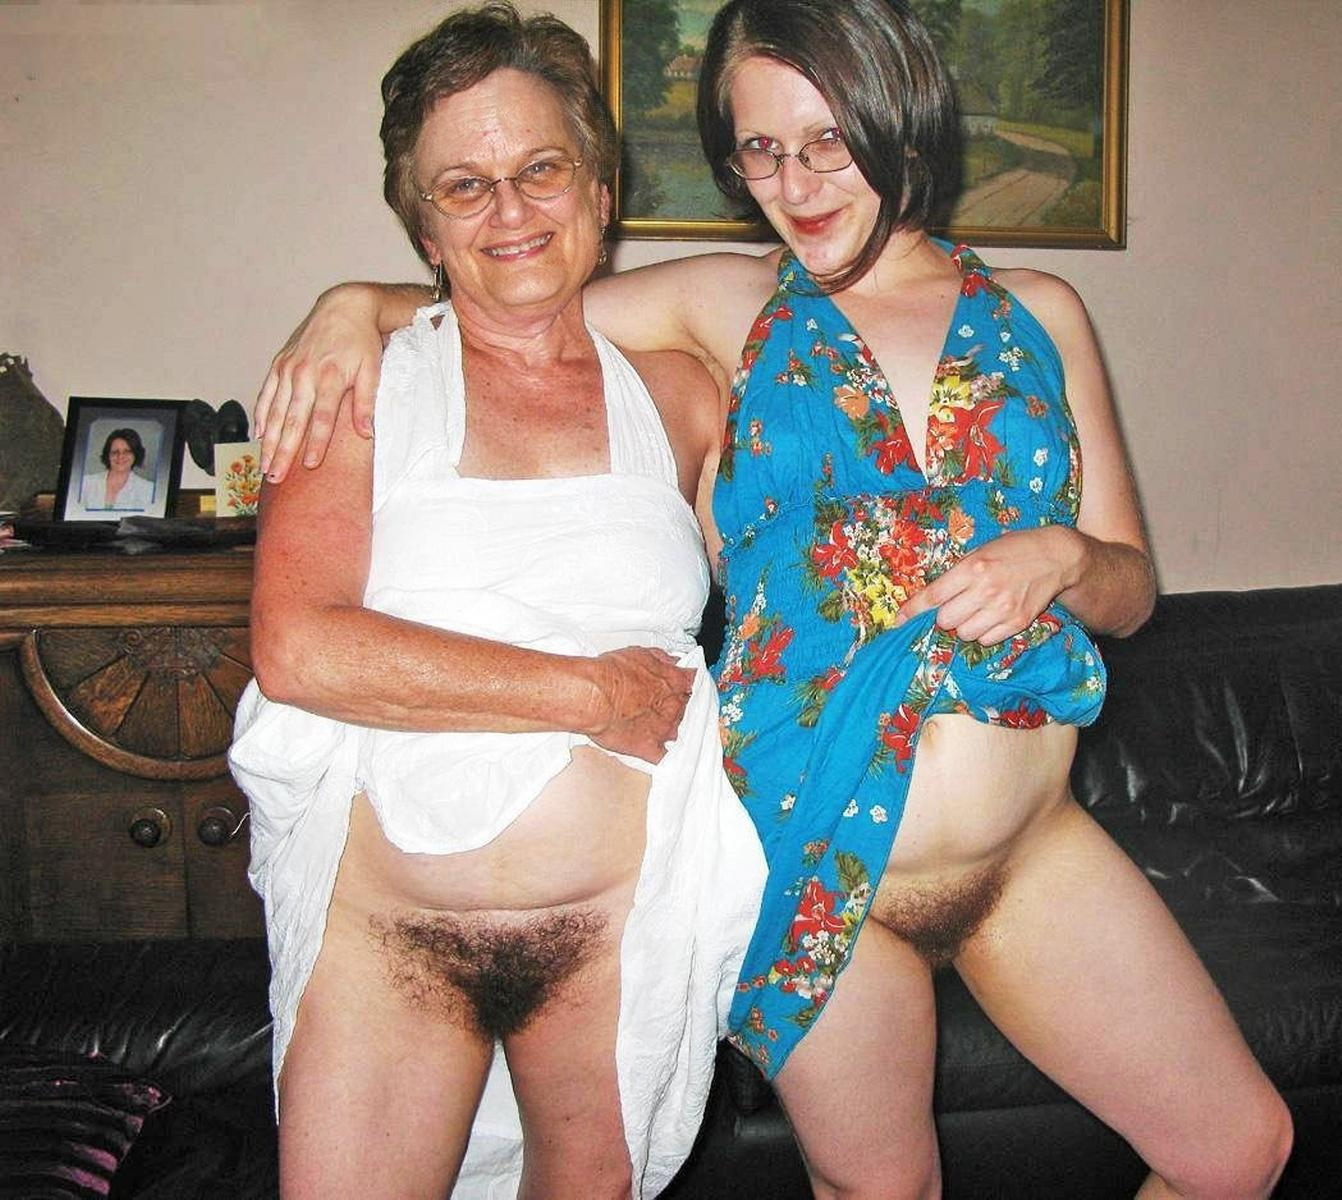 Nude Pictures Of Mothers And Daughters